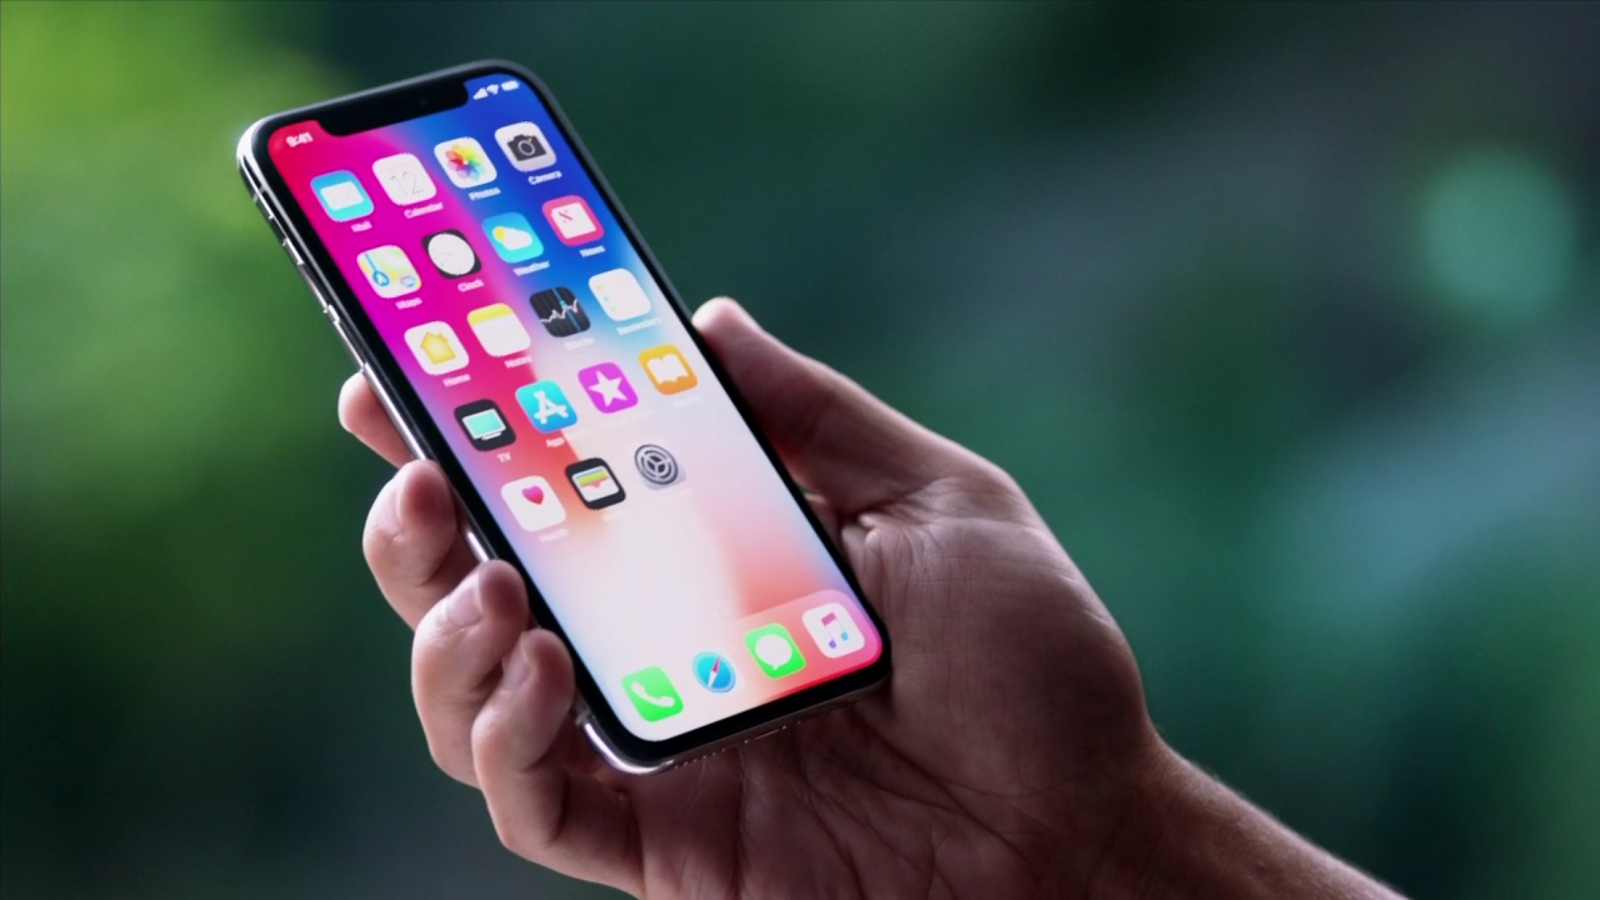 IMG_4145 Check out the Stunning iPhone X (iPhone 10) images Apple